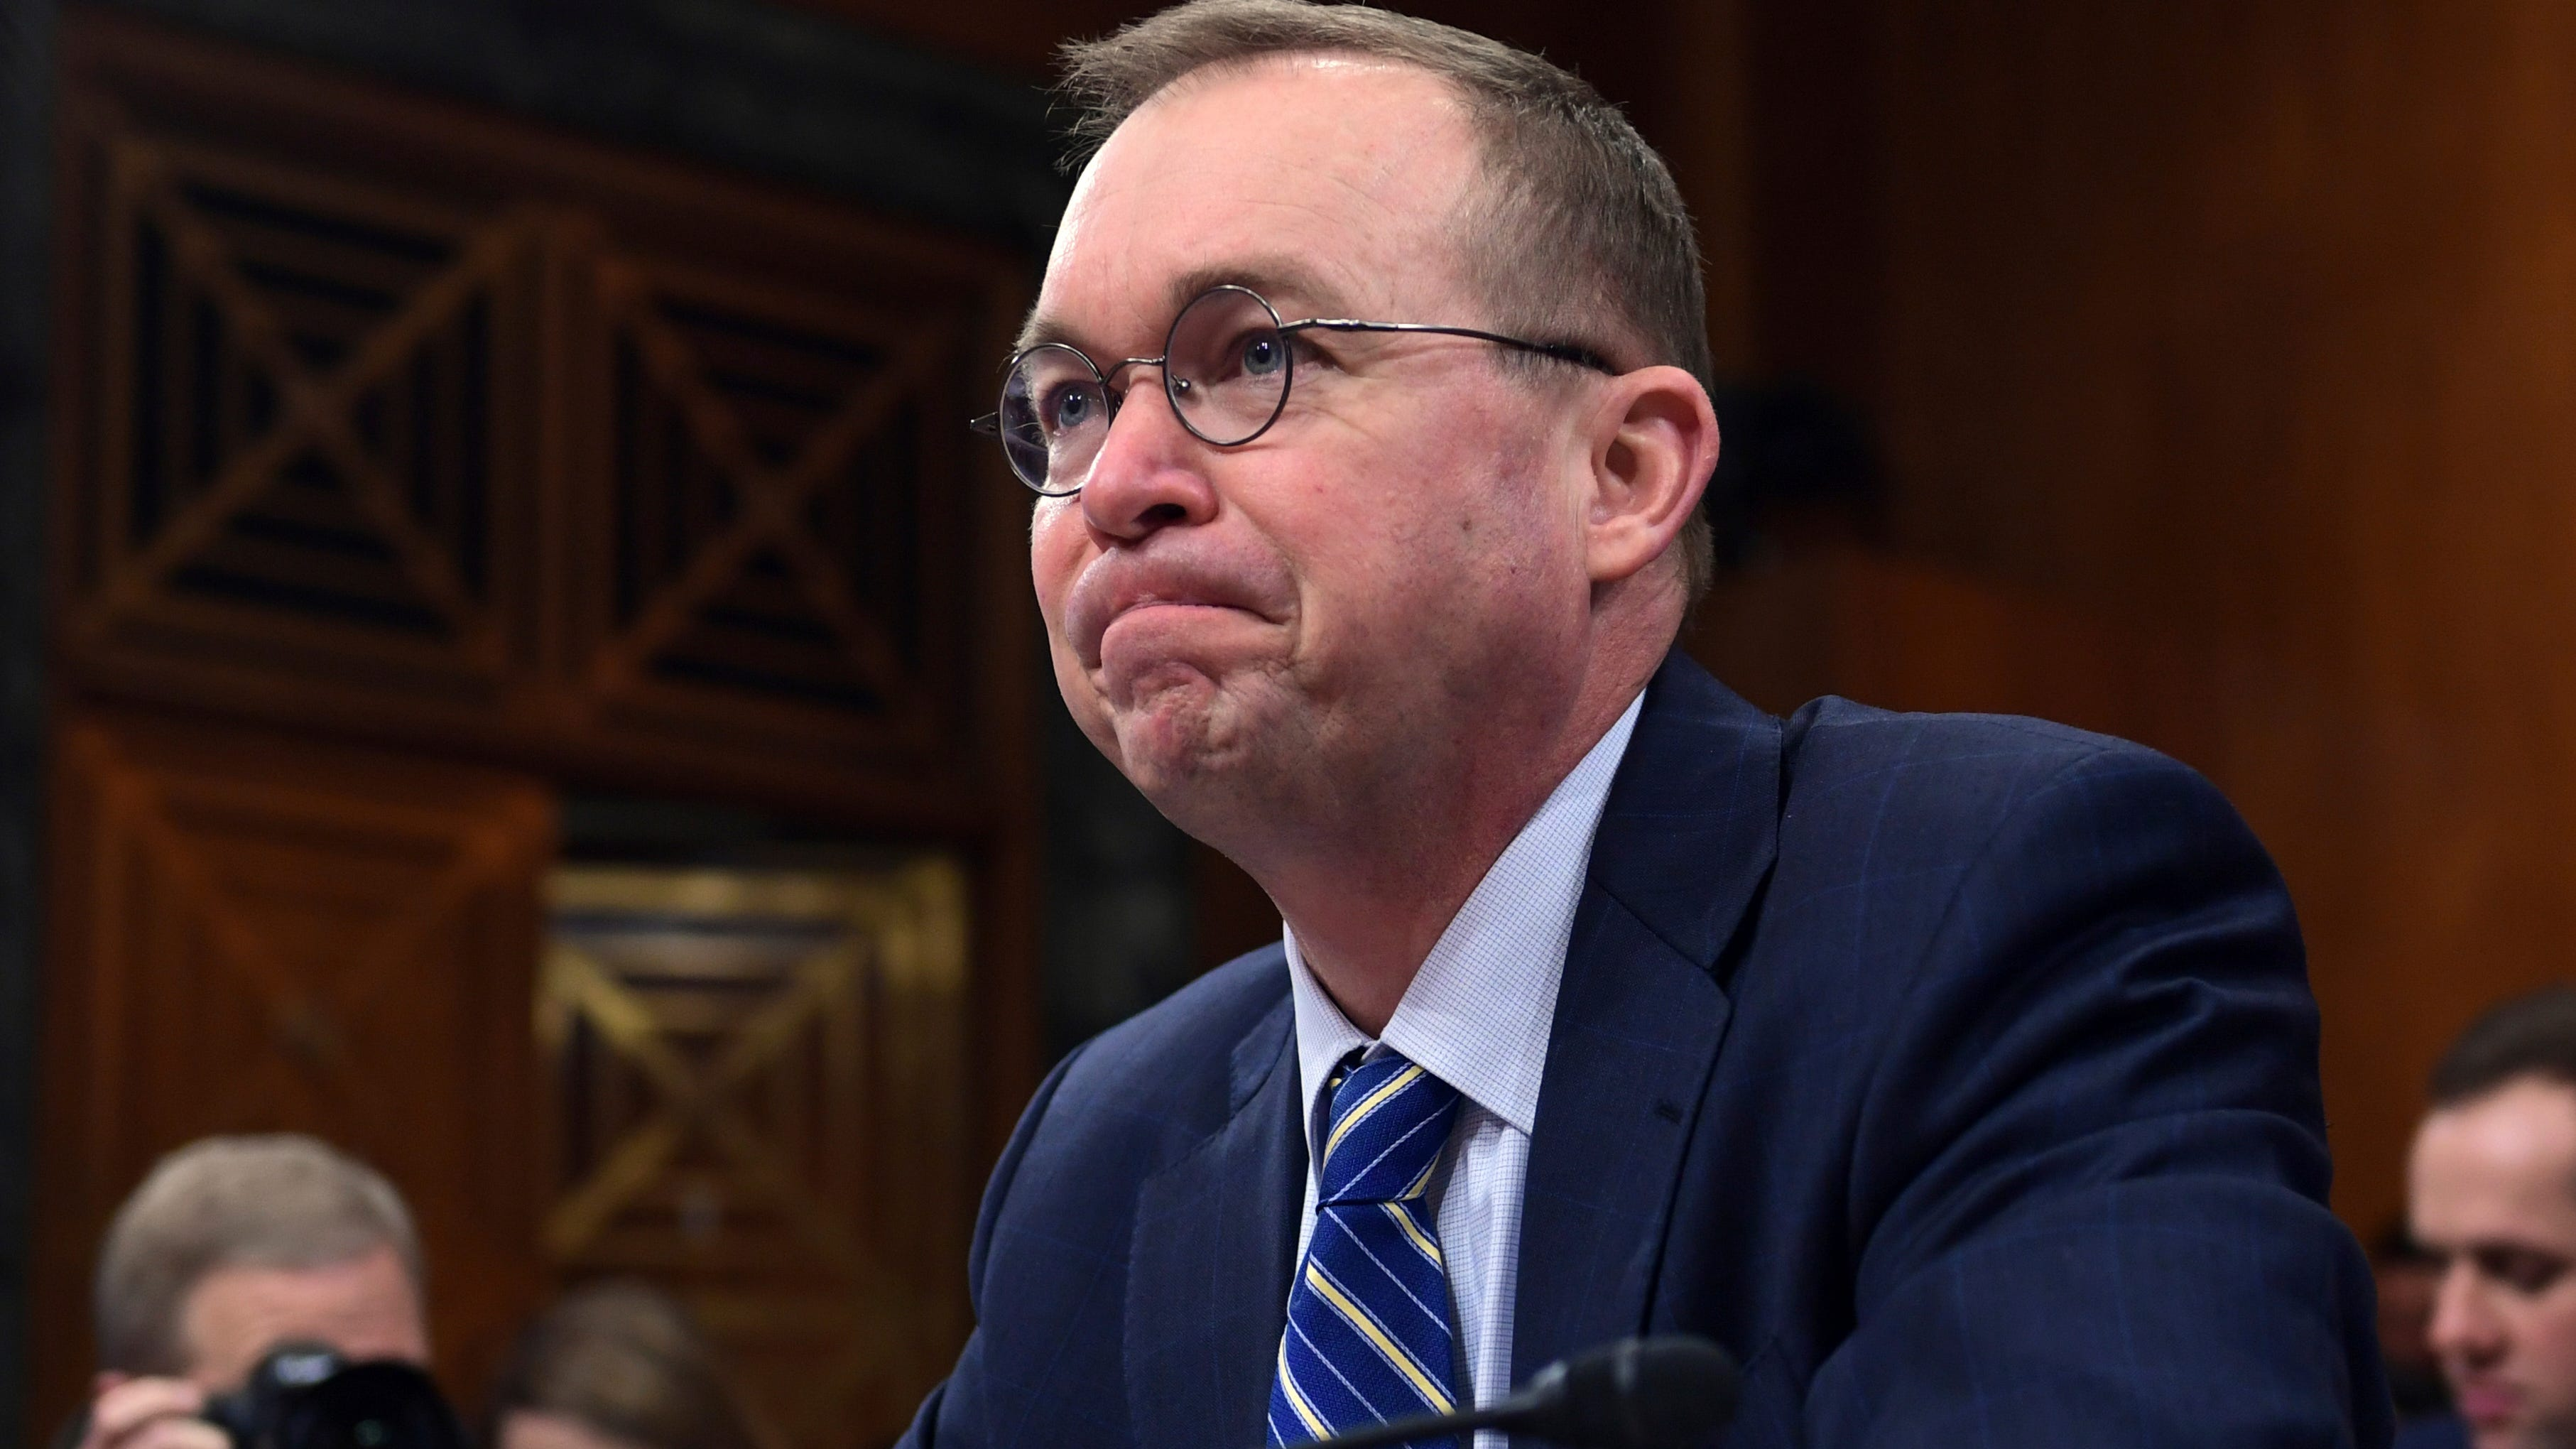 Budget Director Mick Mulvaney is pictured testifying before the Senate Budget Committee on Capitol Hill.